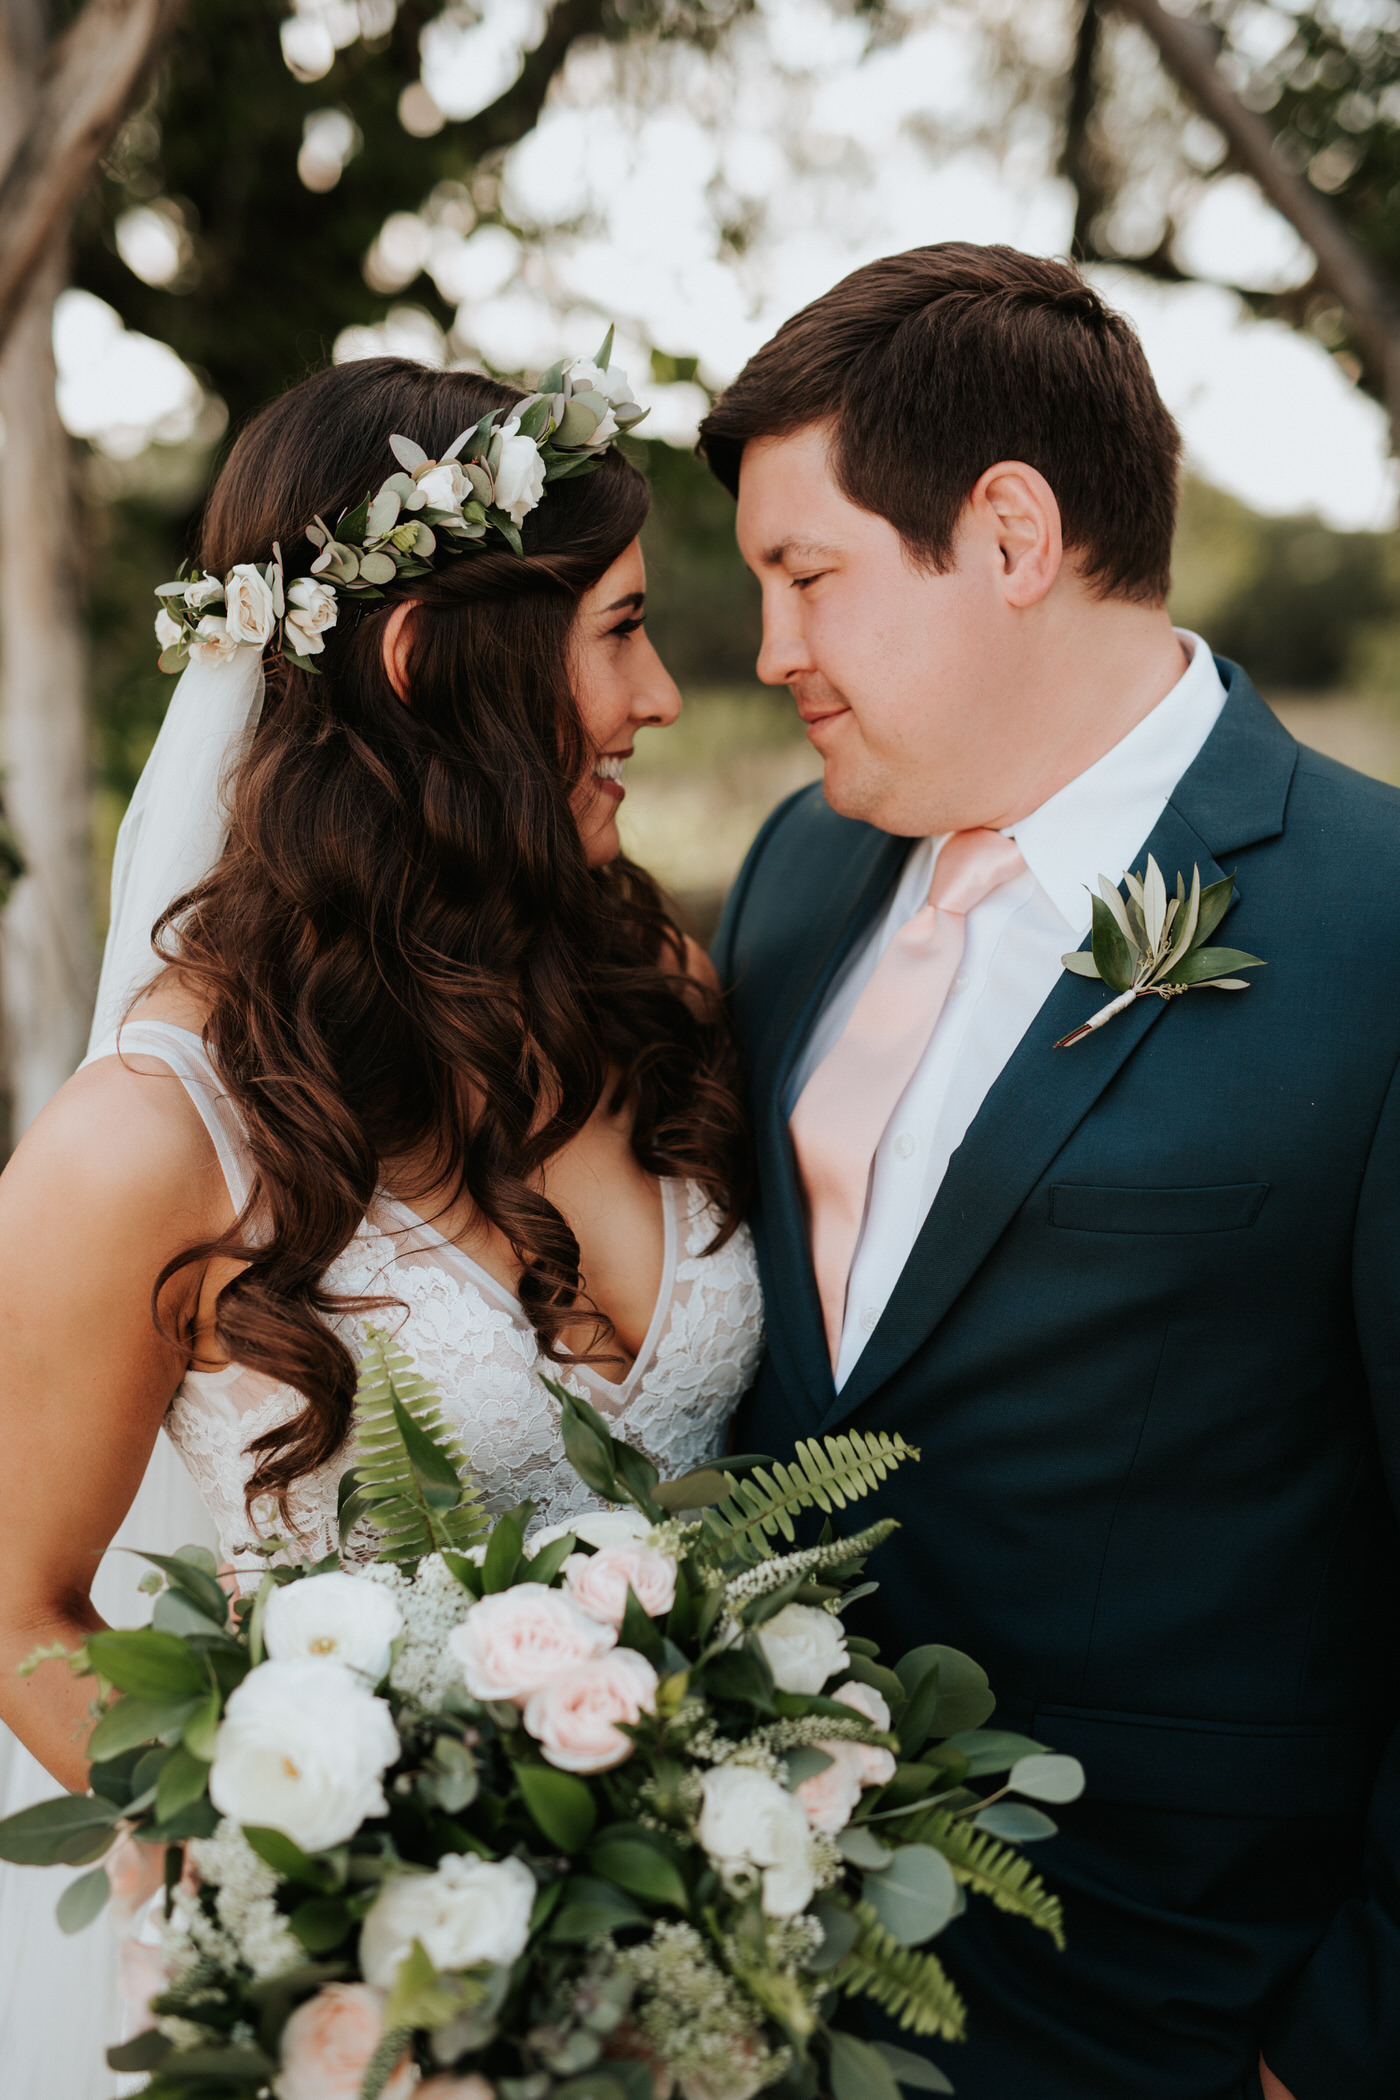 Bride and groom at Thurman's Mansion